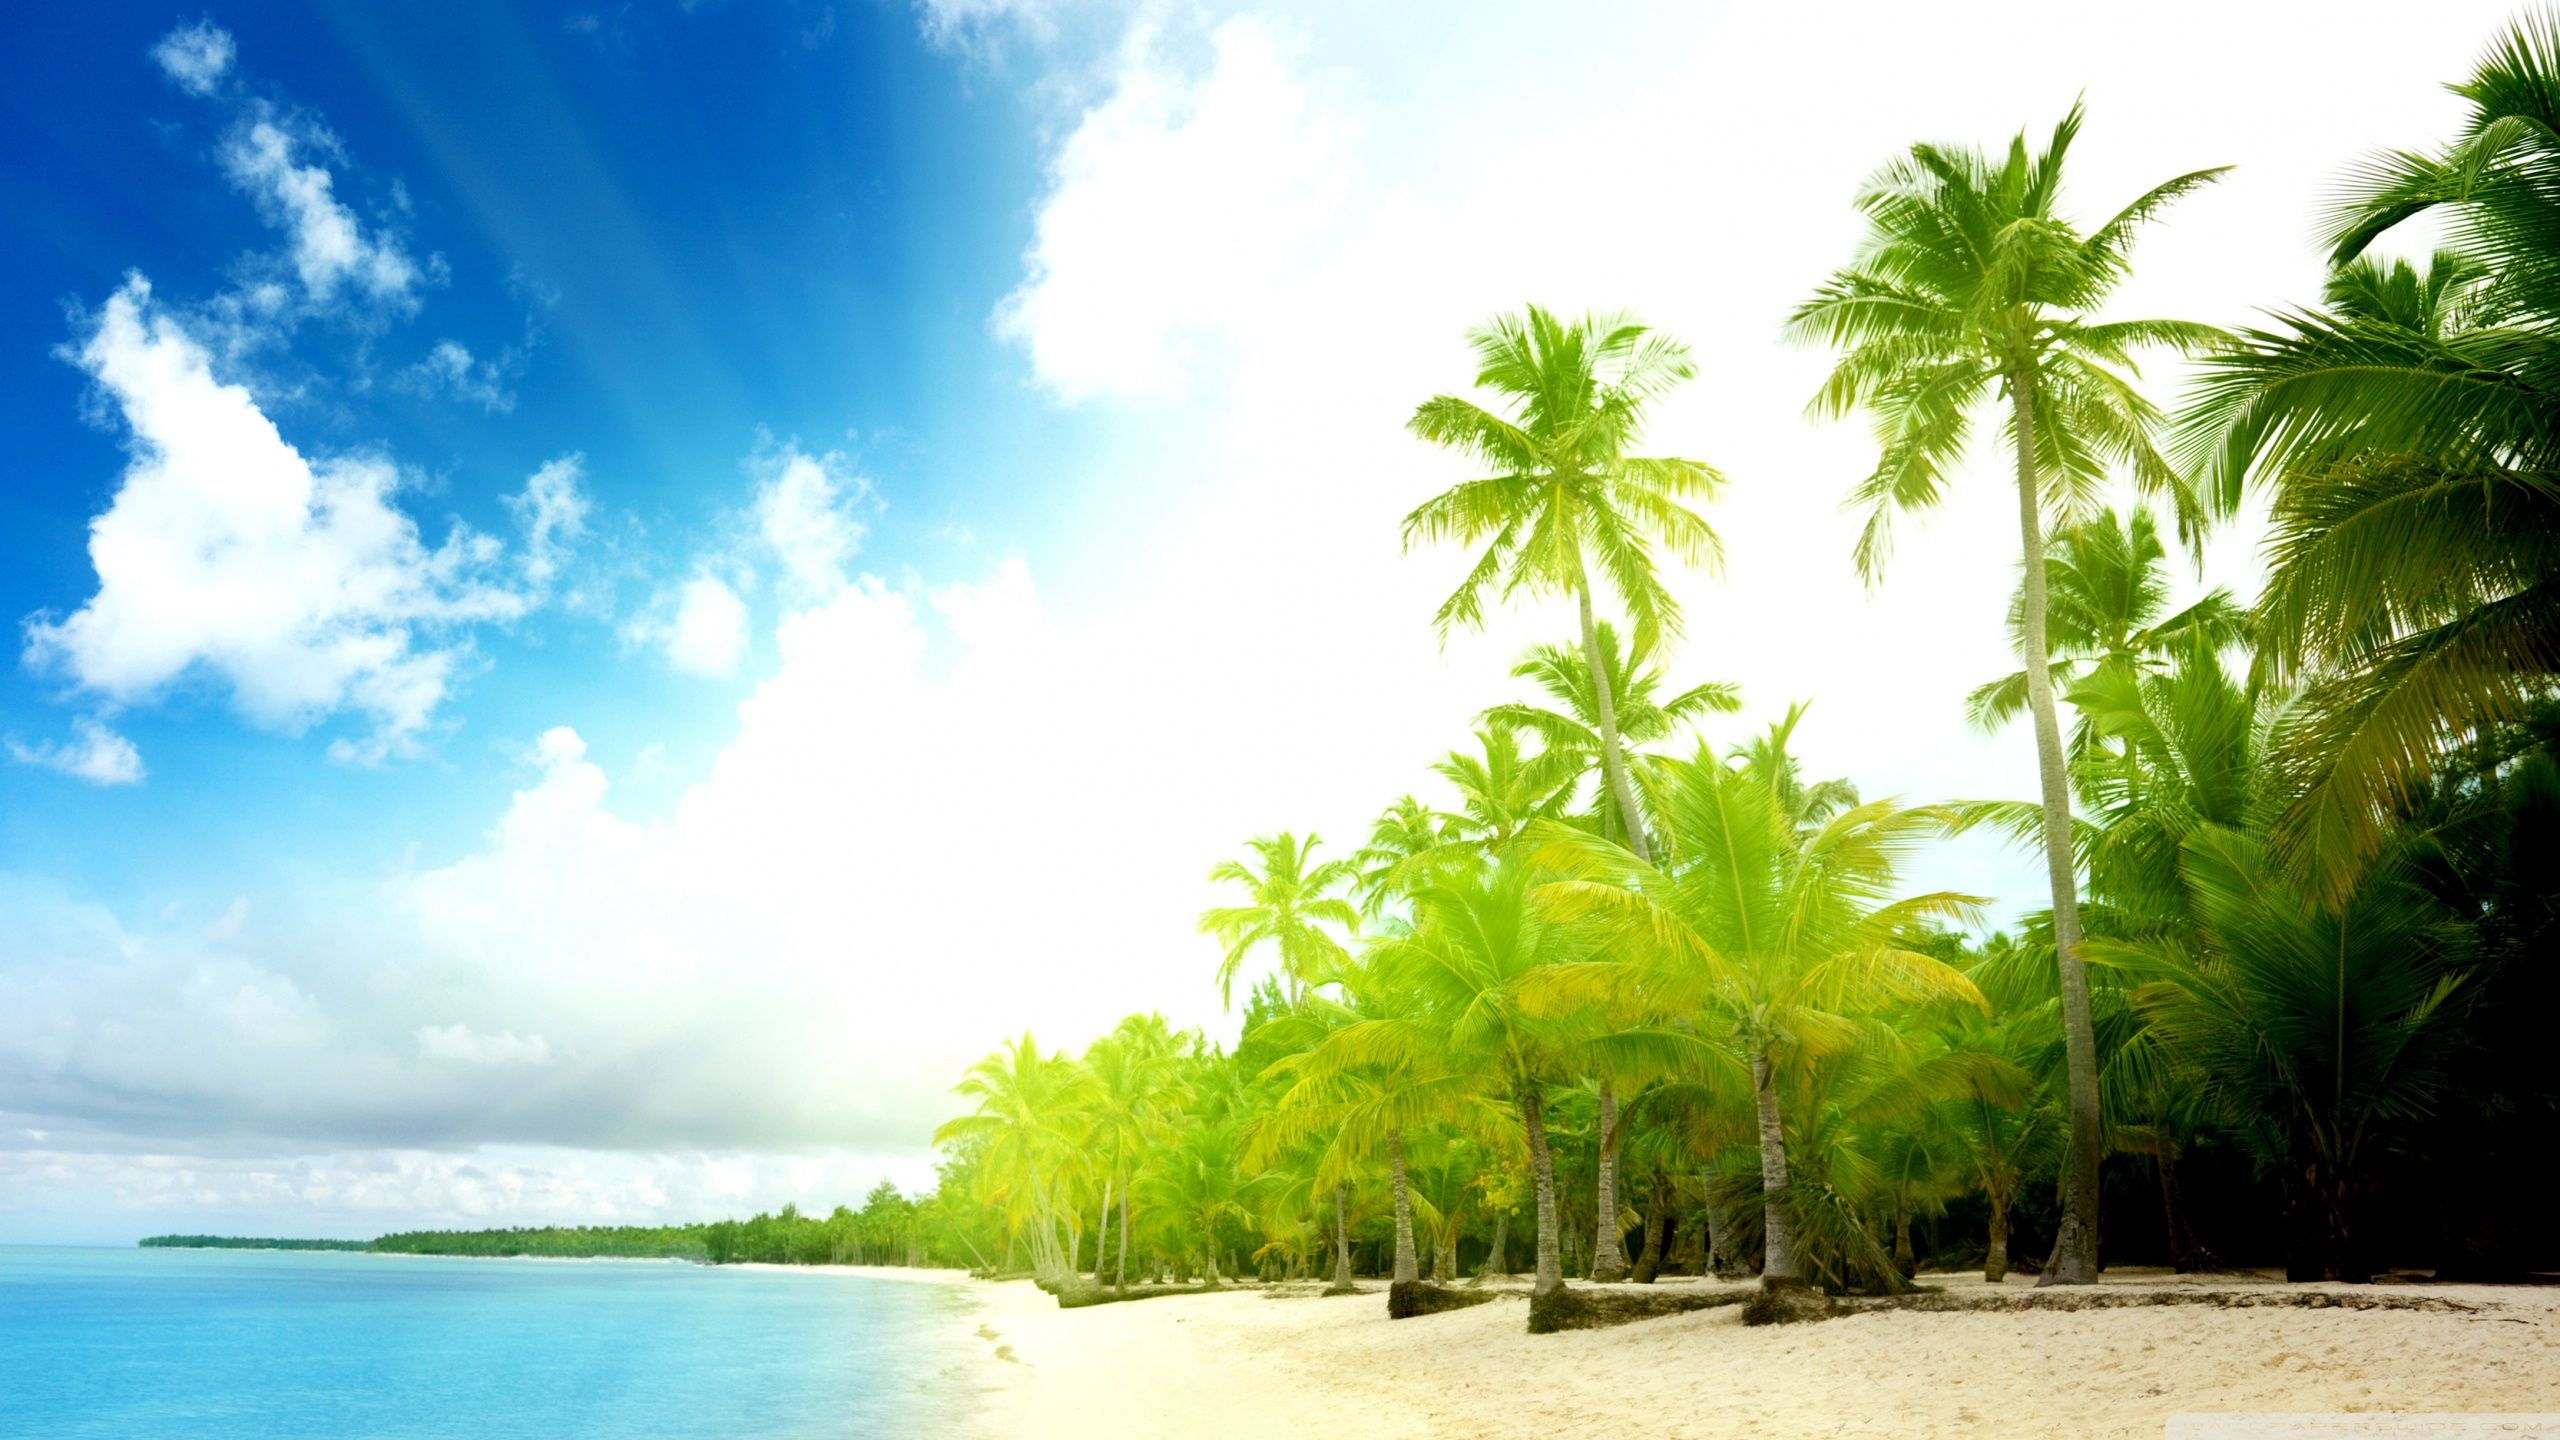 The Bright Beach Hd Wallpaper Background Image 2560x1440 Id 994529 Wallpaper Abyss